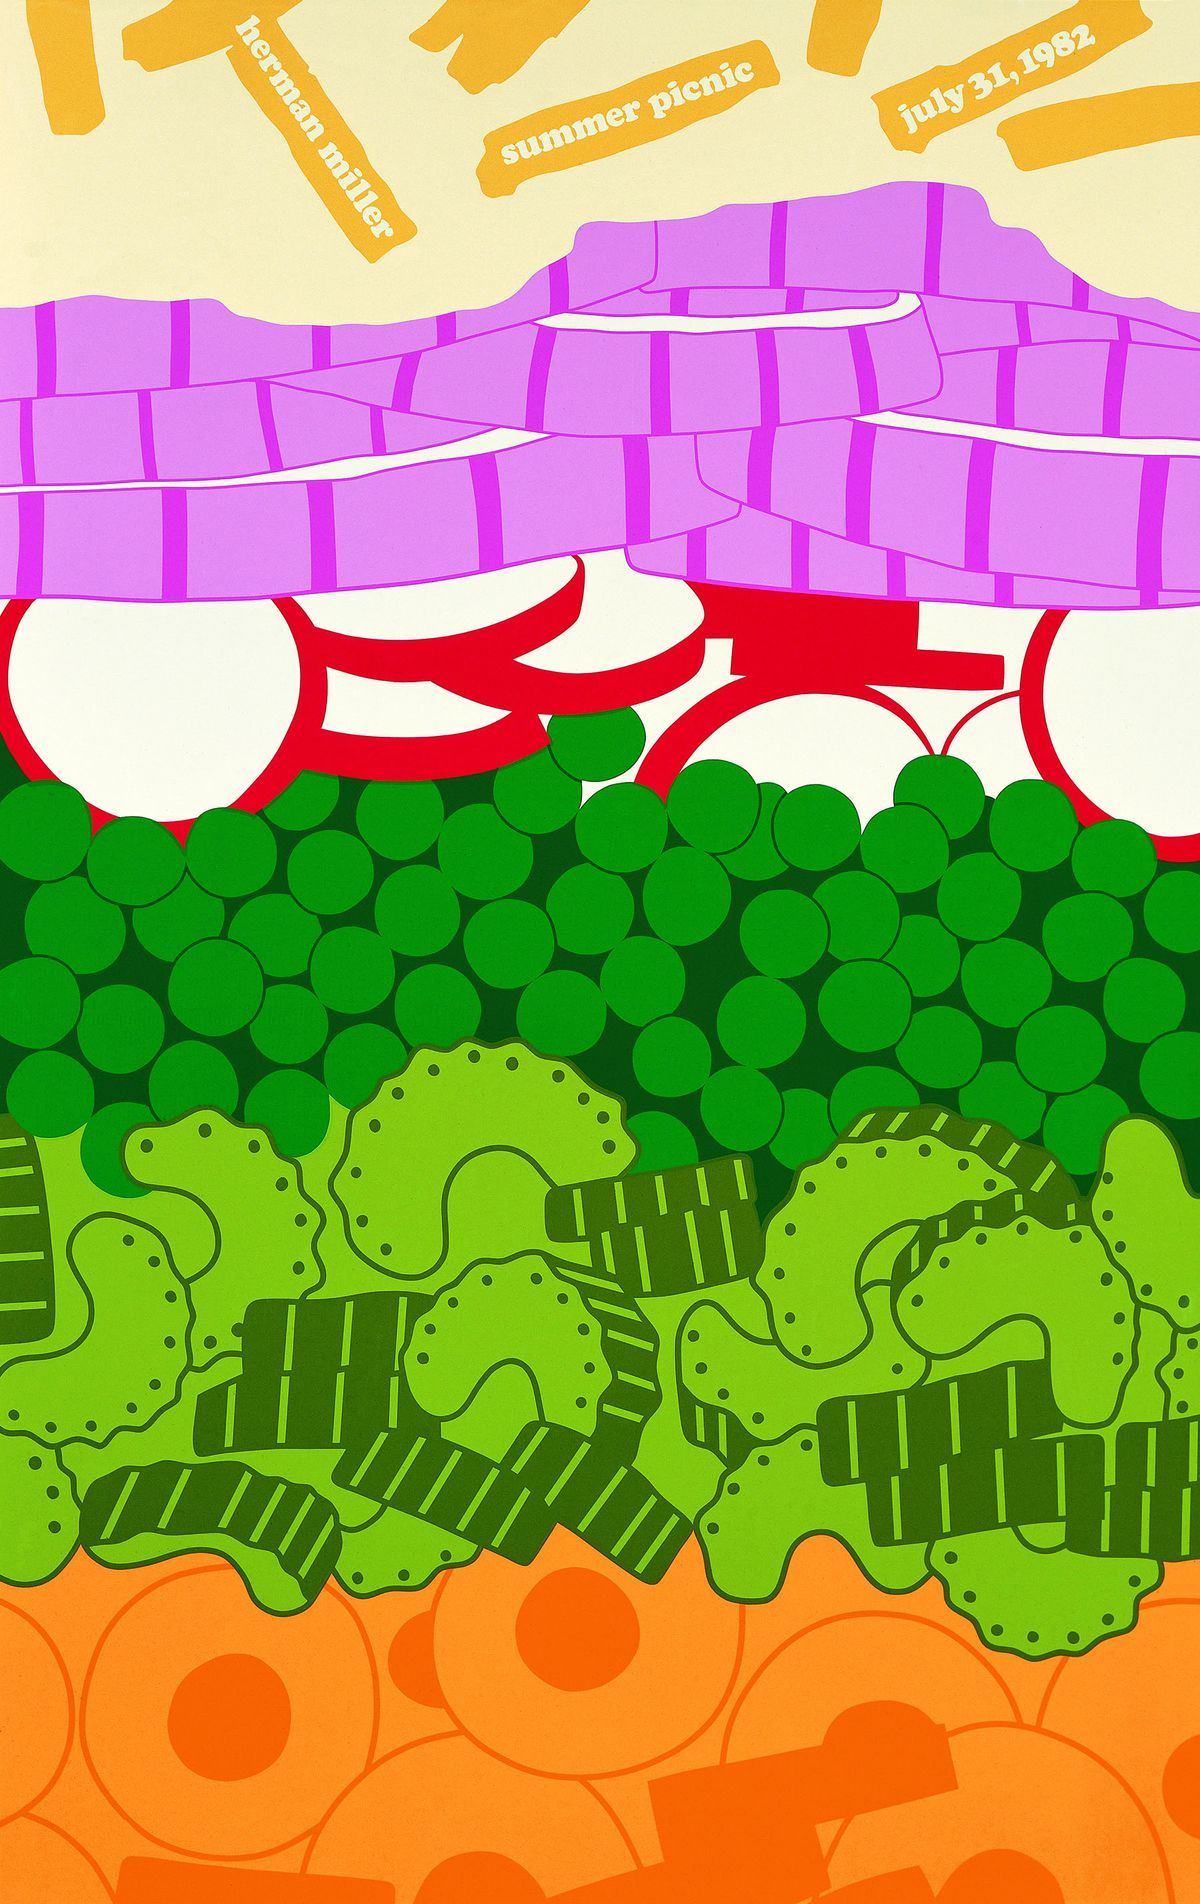 A colorful poster showing the layers of a salad that's advertising Herman Miller's picnic.